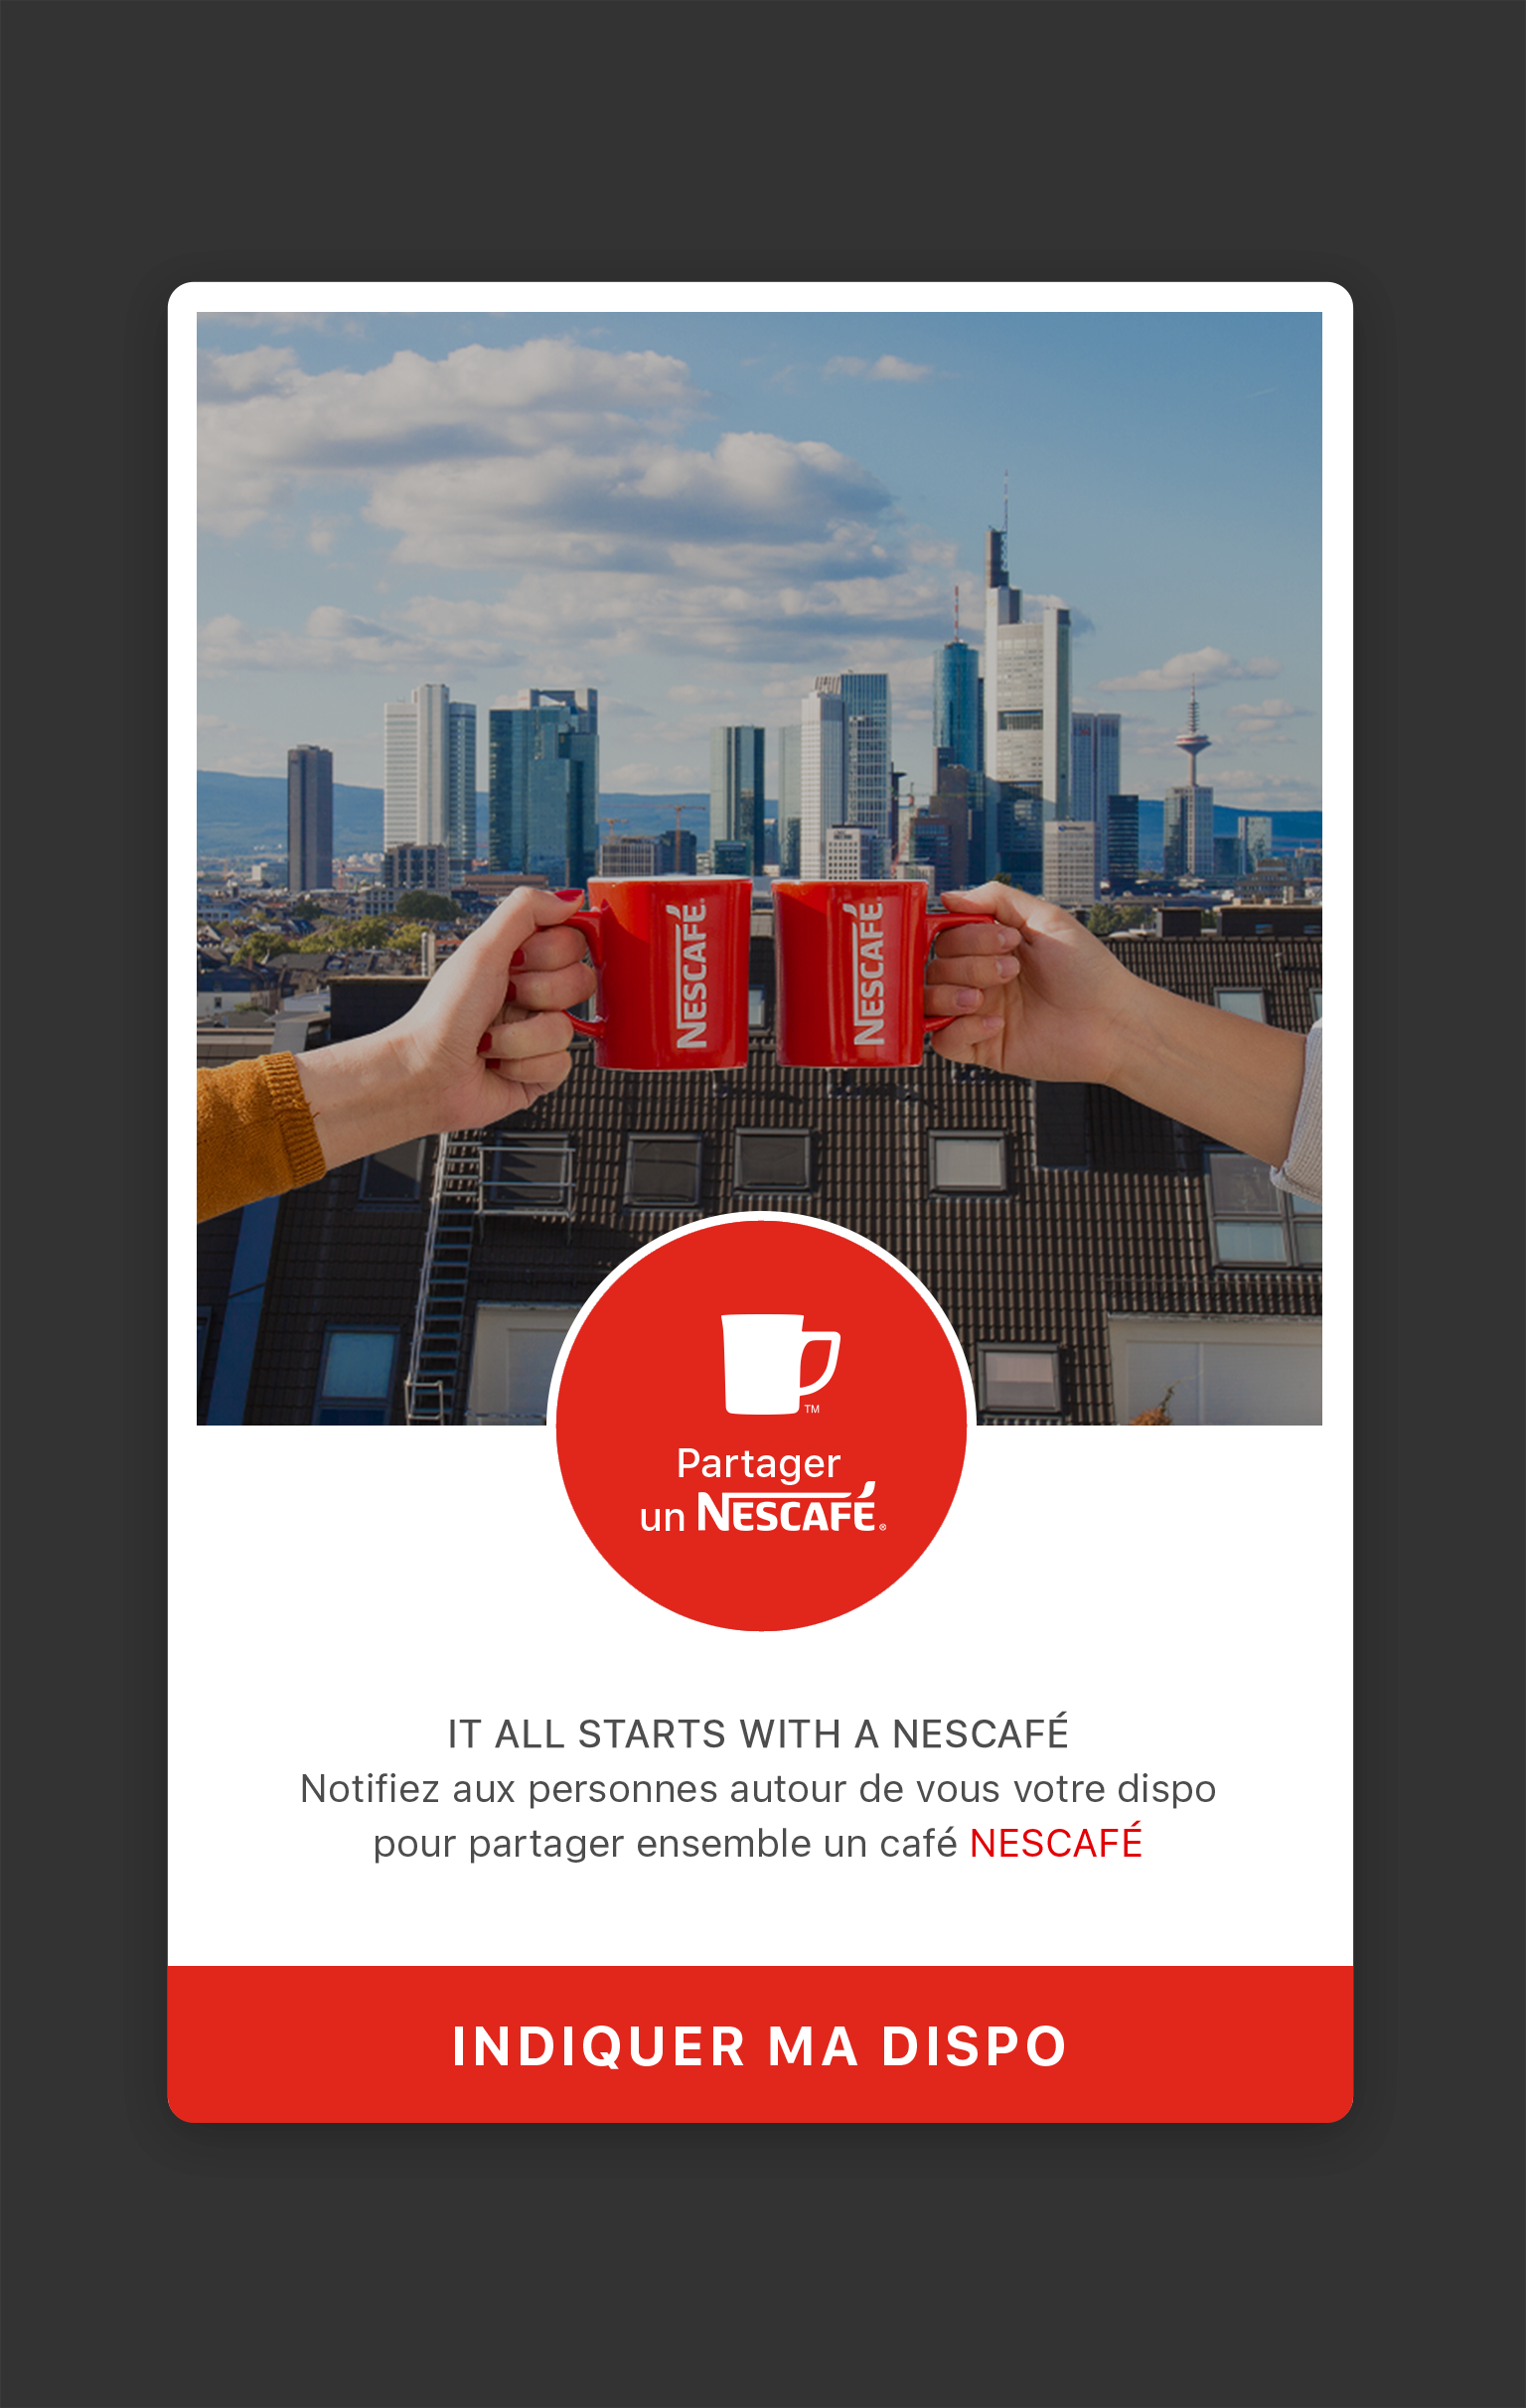 rencontre-cafe-nescafe-happn-3